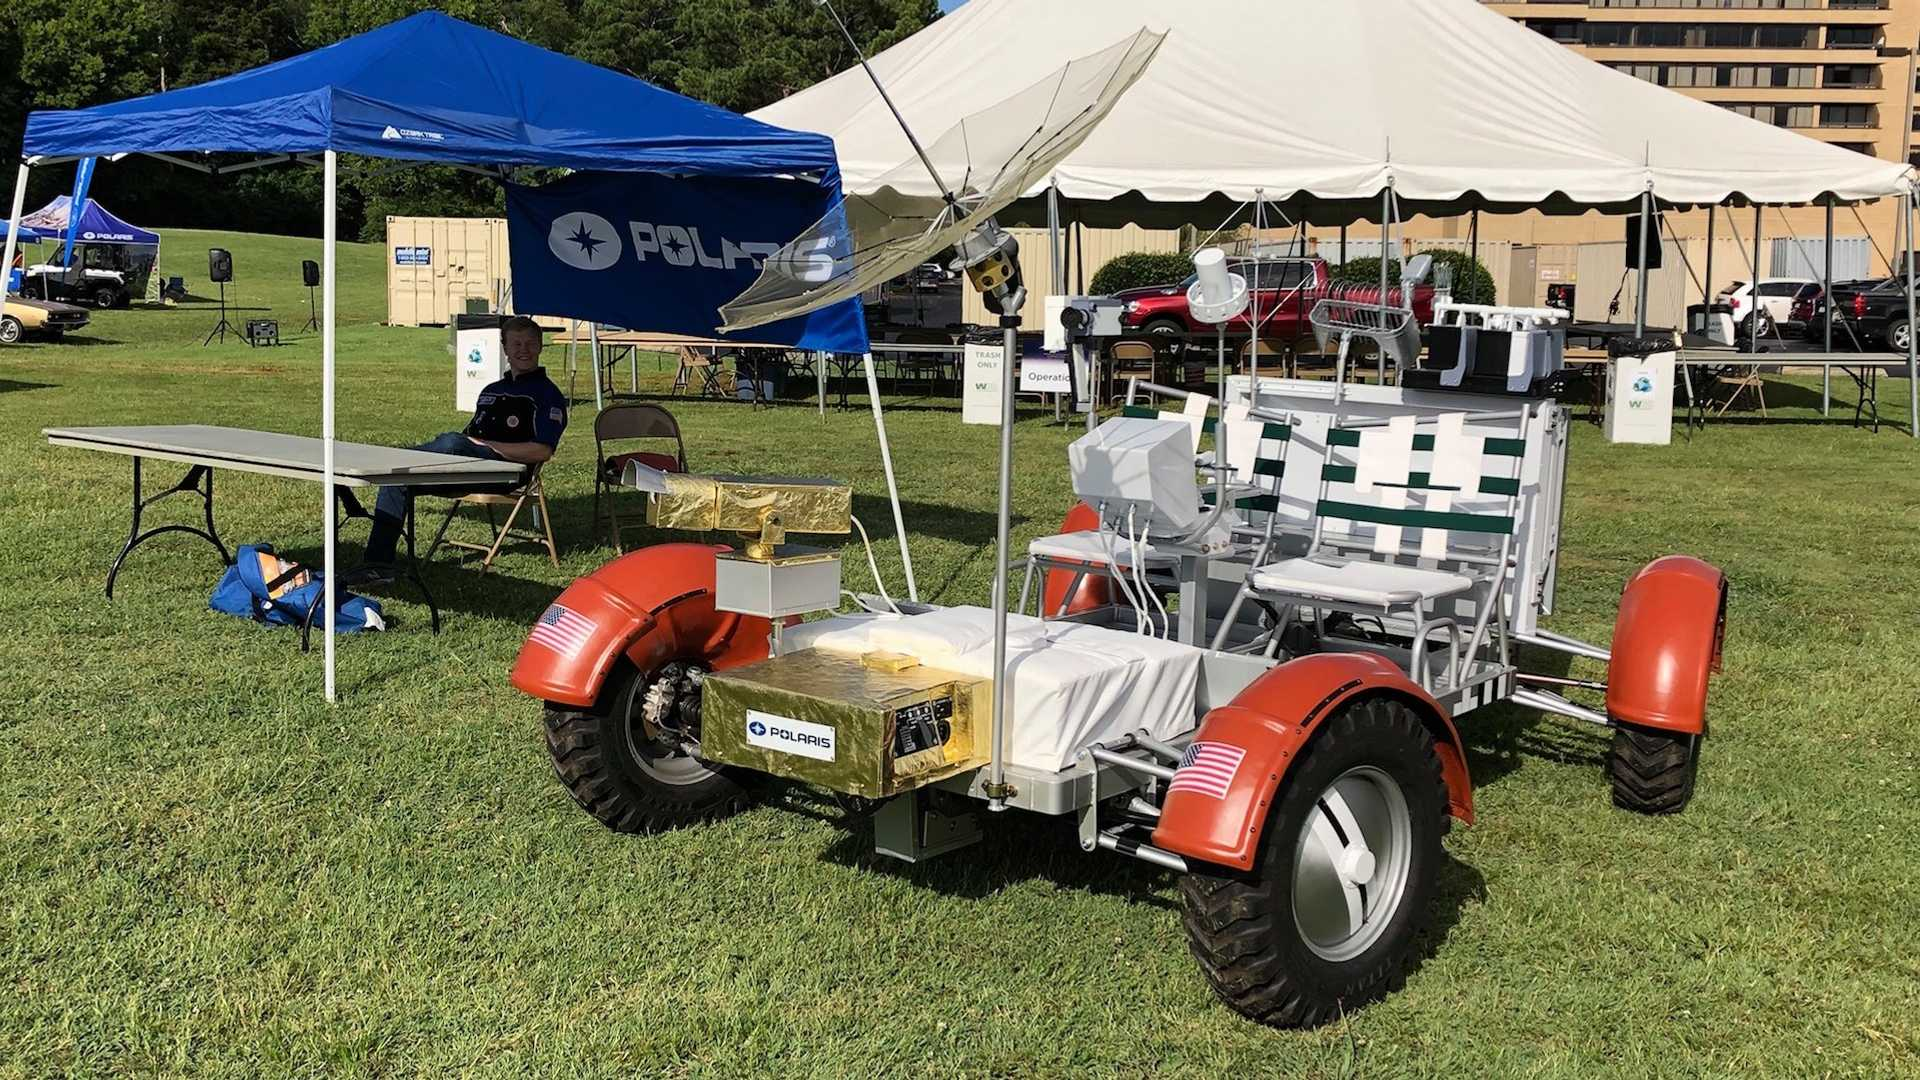 Moon Buggy Diy Polaris Built A Working Lunar Rover Replica And It S Awesome